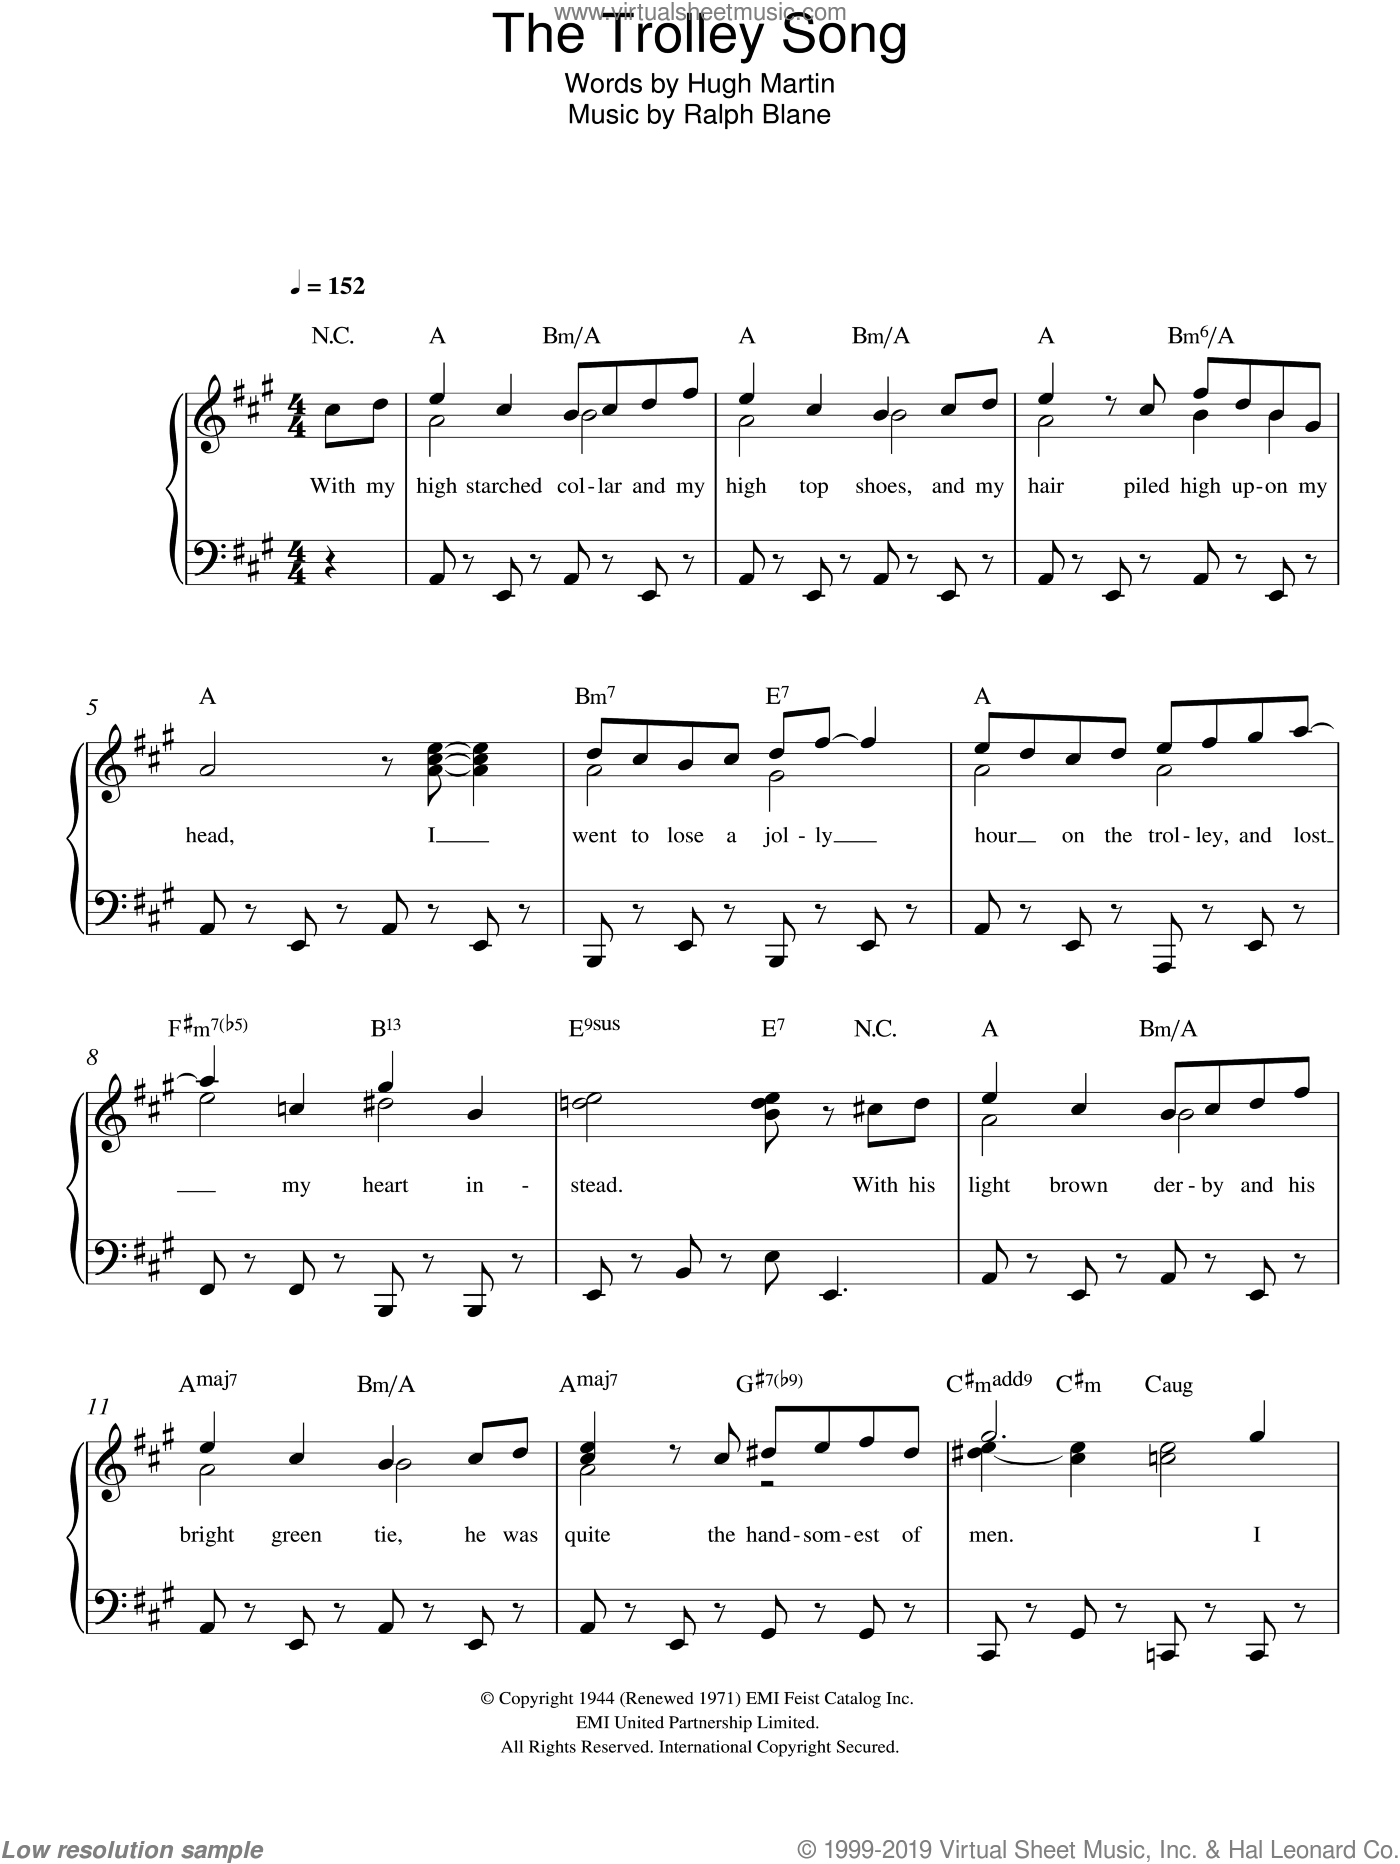 The Trolley Song (from 'Meet Me In St. Louis') sheet music for piano solo by Judy Garland, Hugh Martin and Ralph Blane, easy skill level